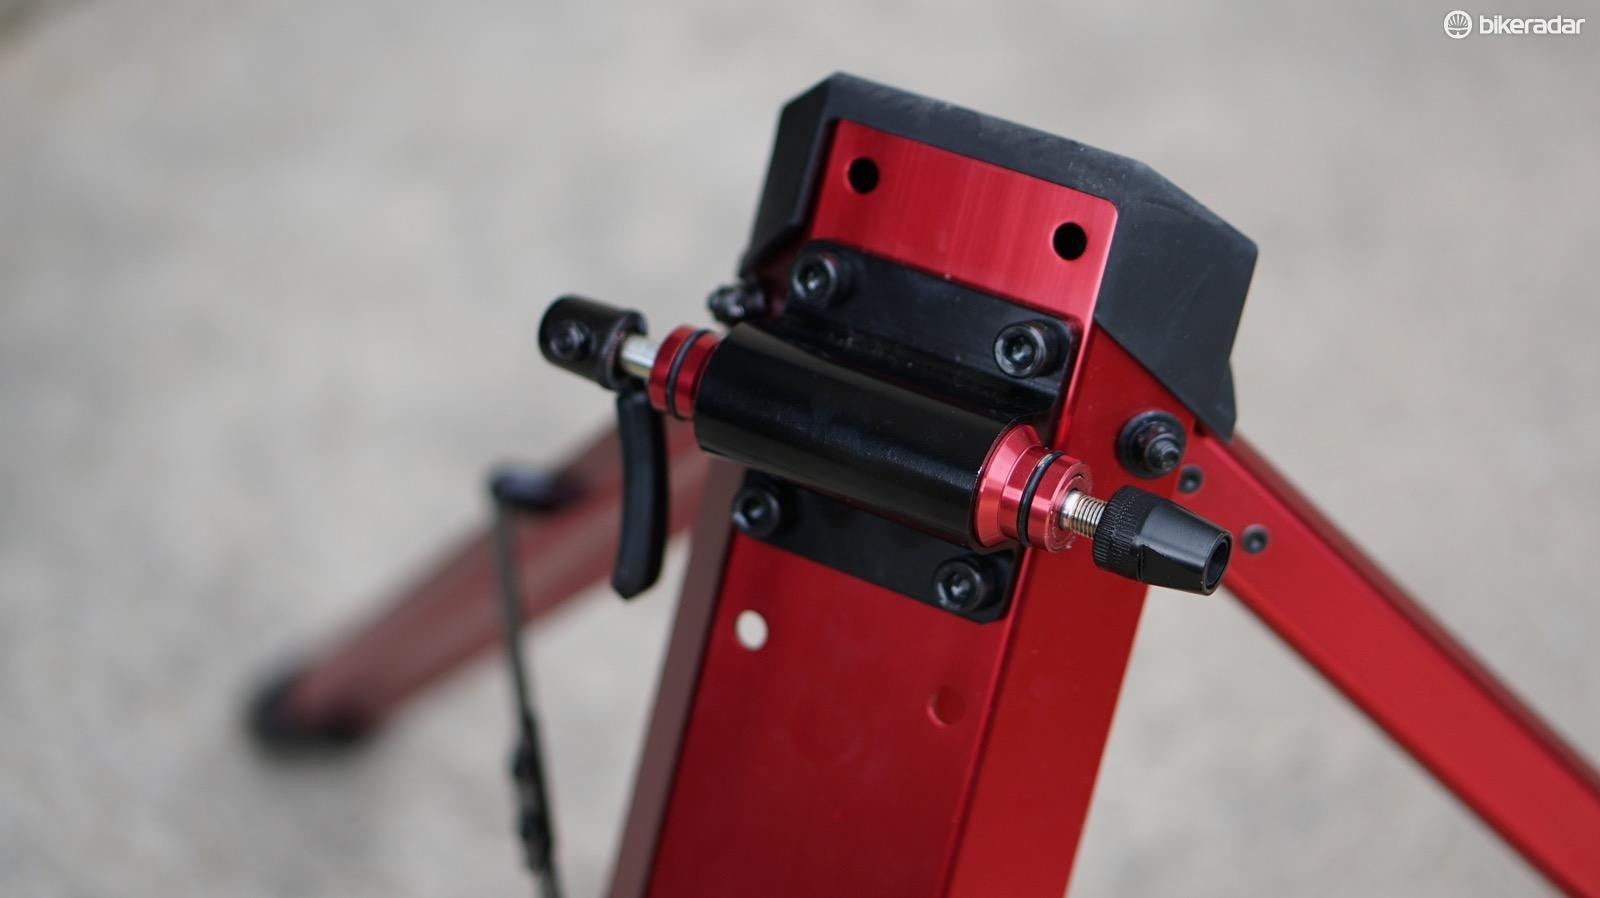 The Omnium is also height adjustable, but you have to unbolt and rebolt the fork mount to do so